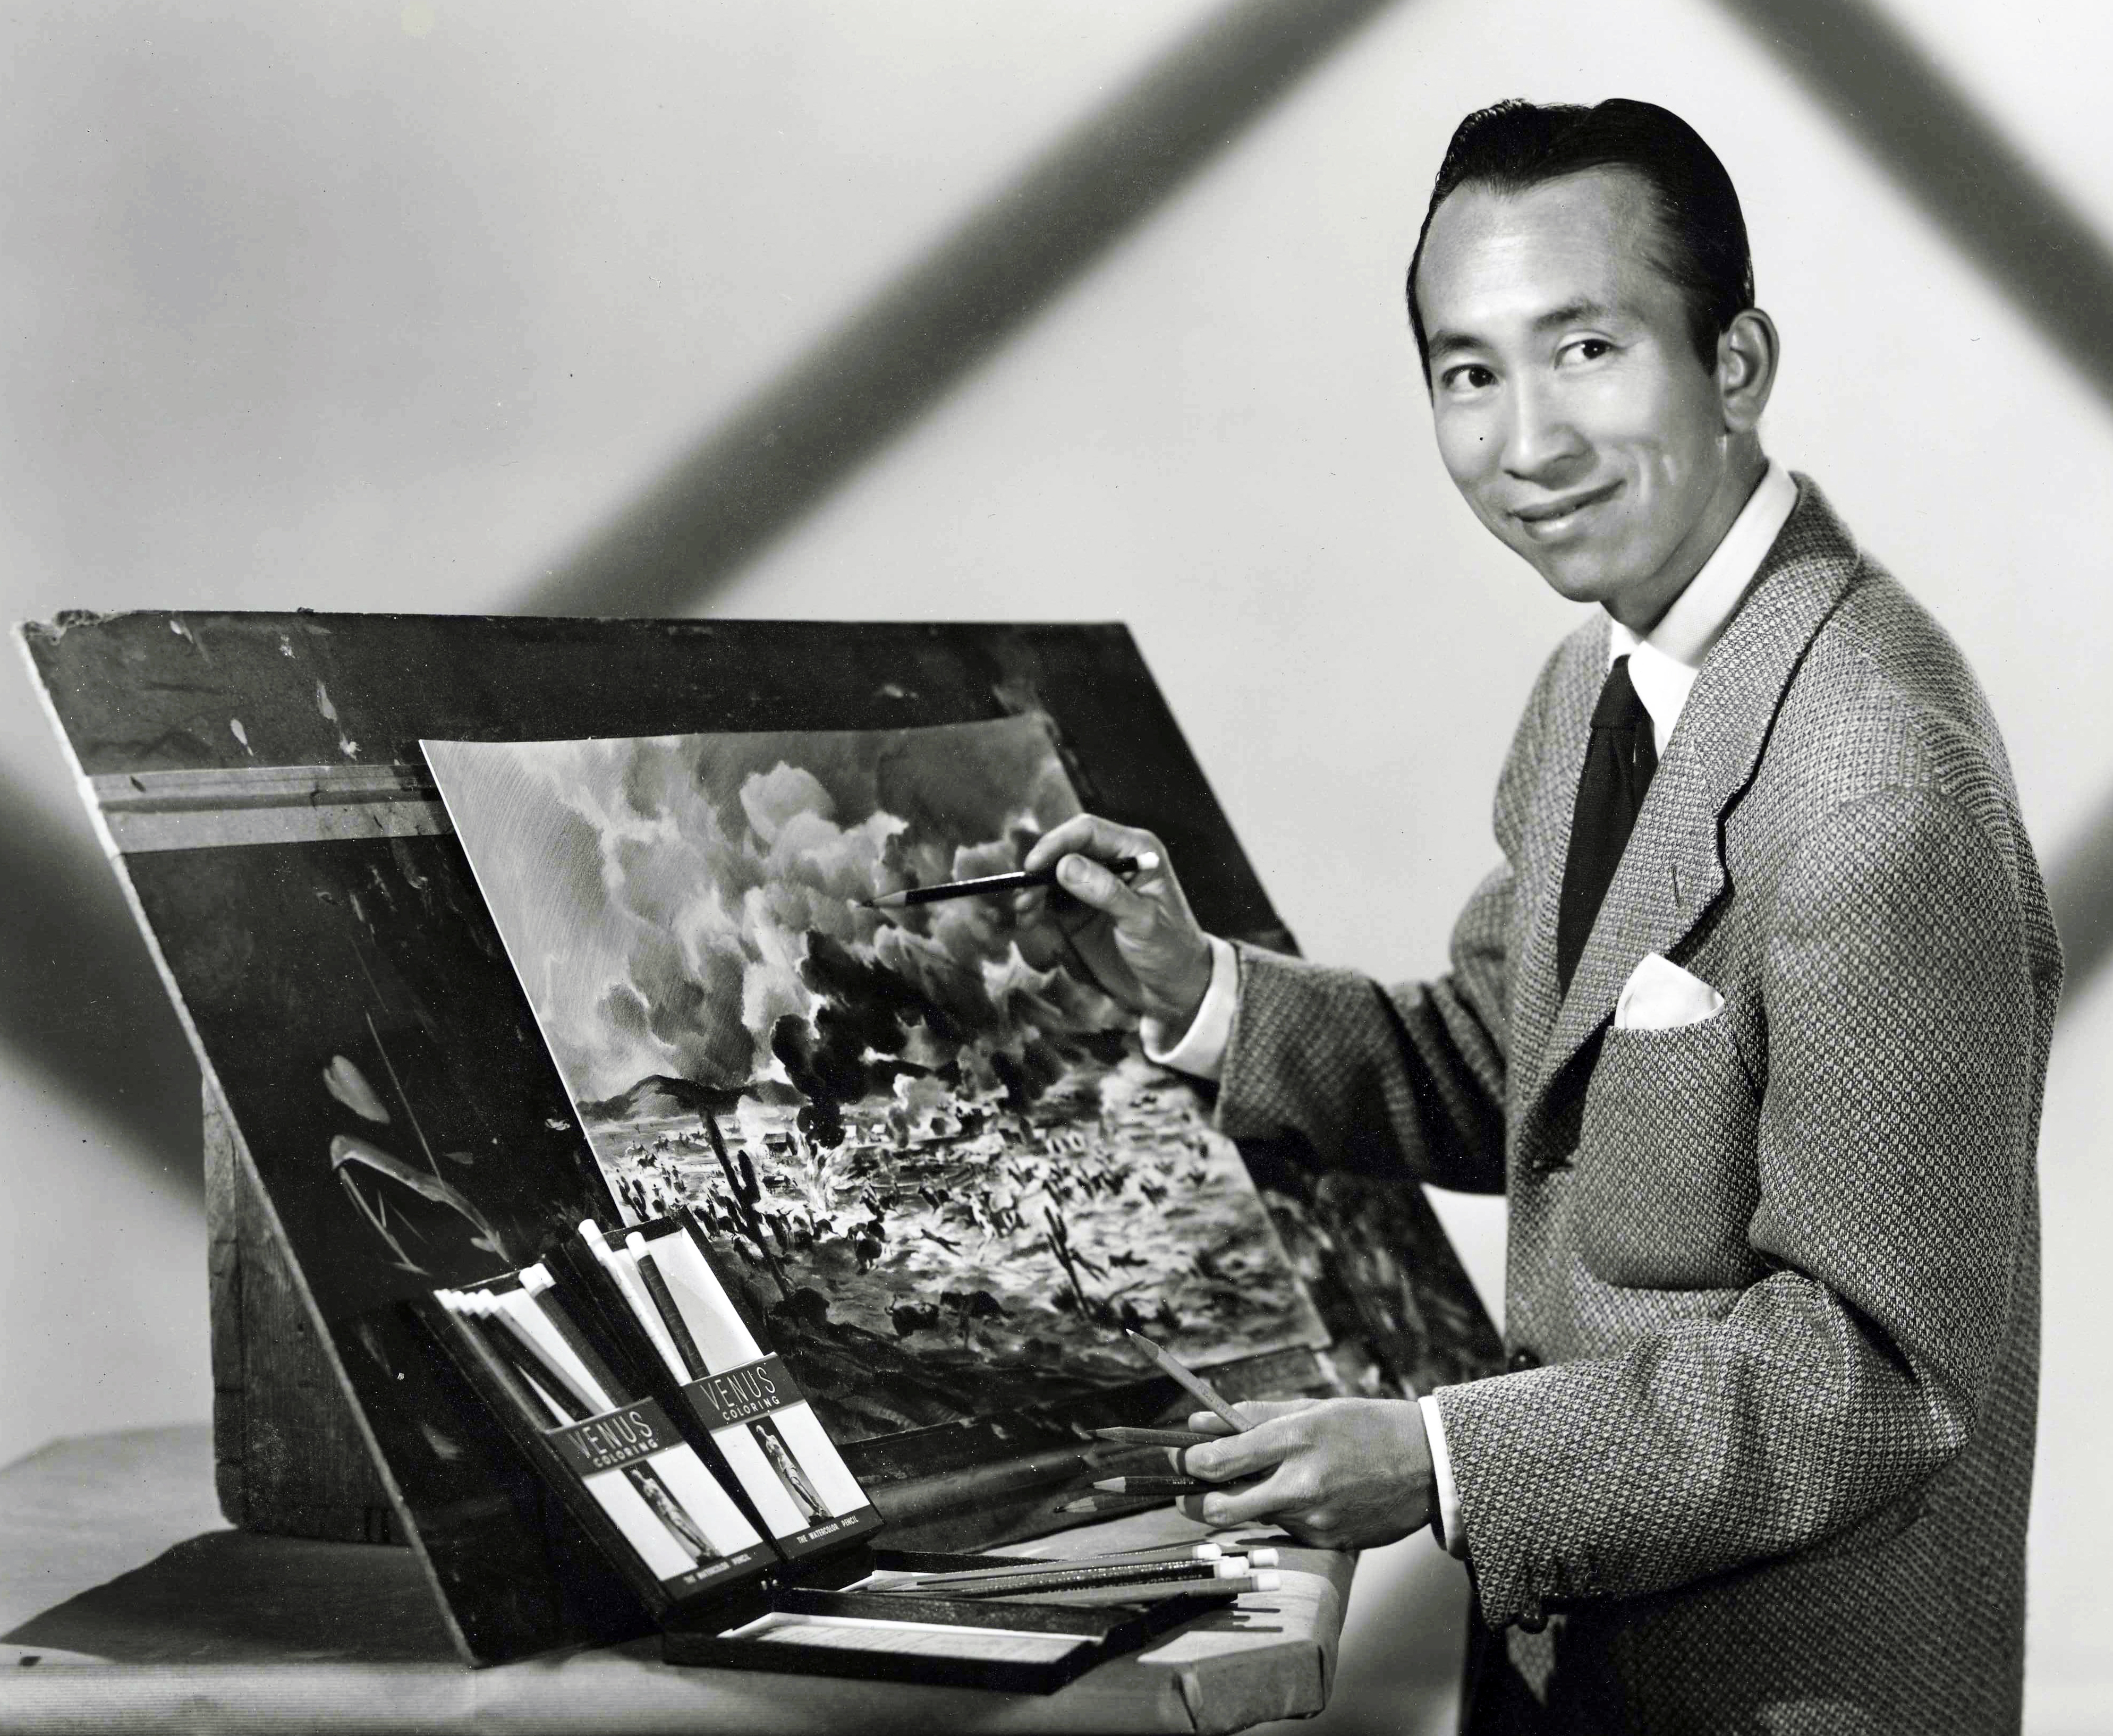 Tyrus Wong working on a Warner Bros western movie production Circa 1940s.